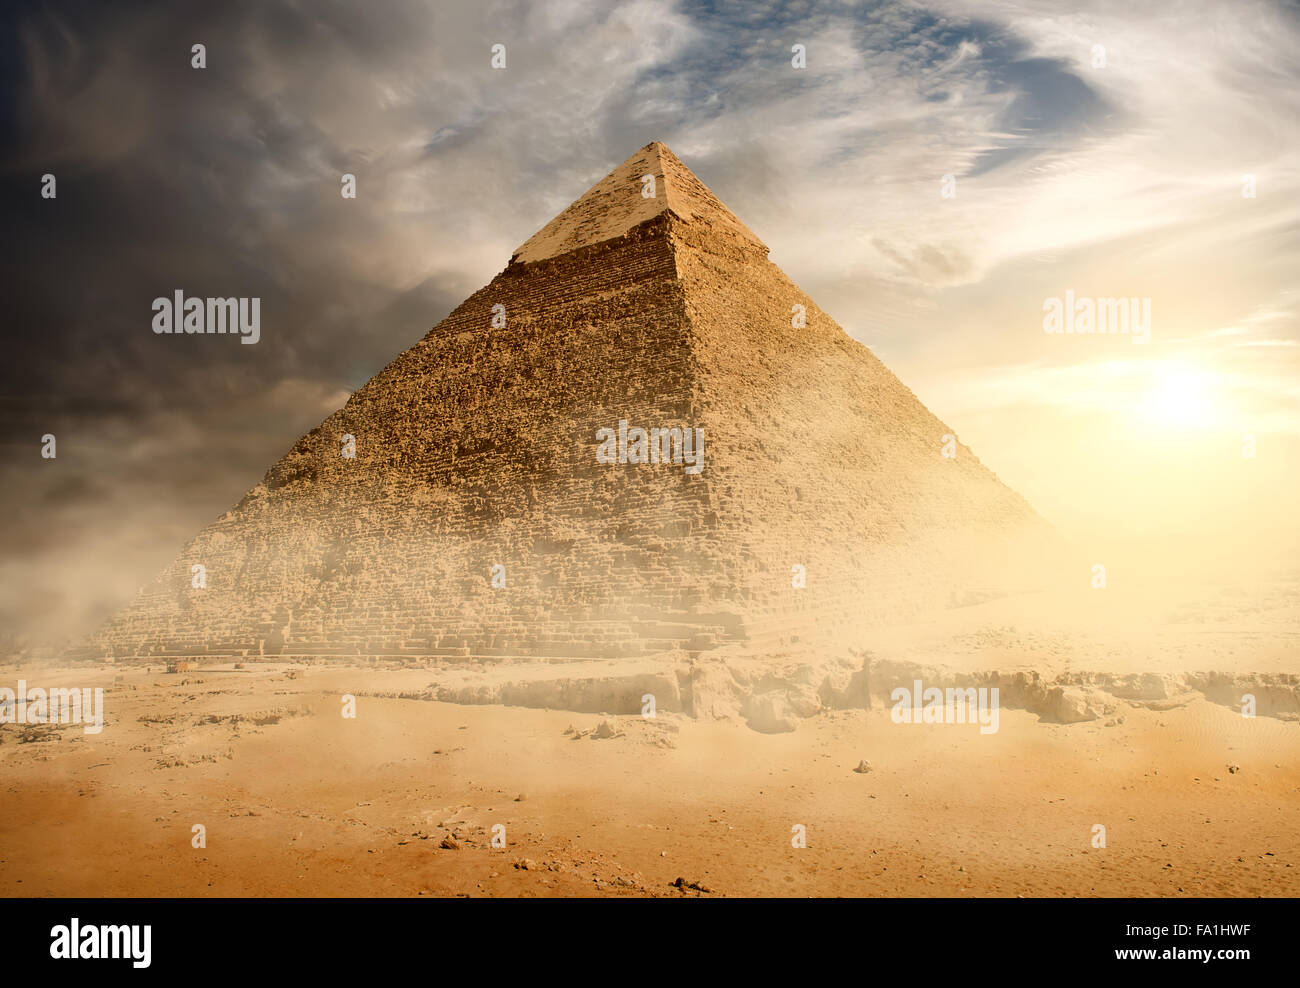 Pyramid in sand dust under gray clouds - Stock Image